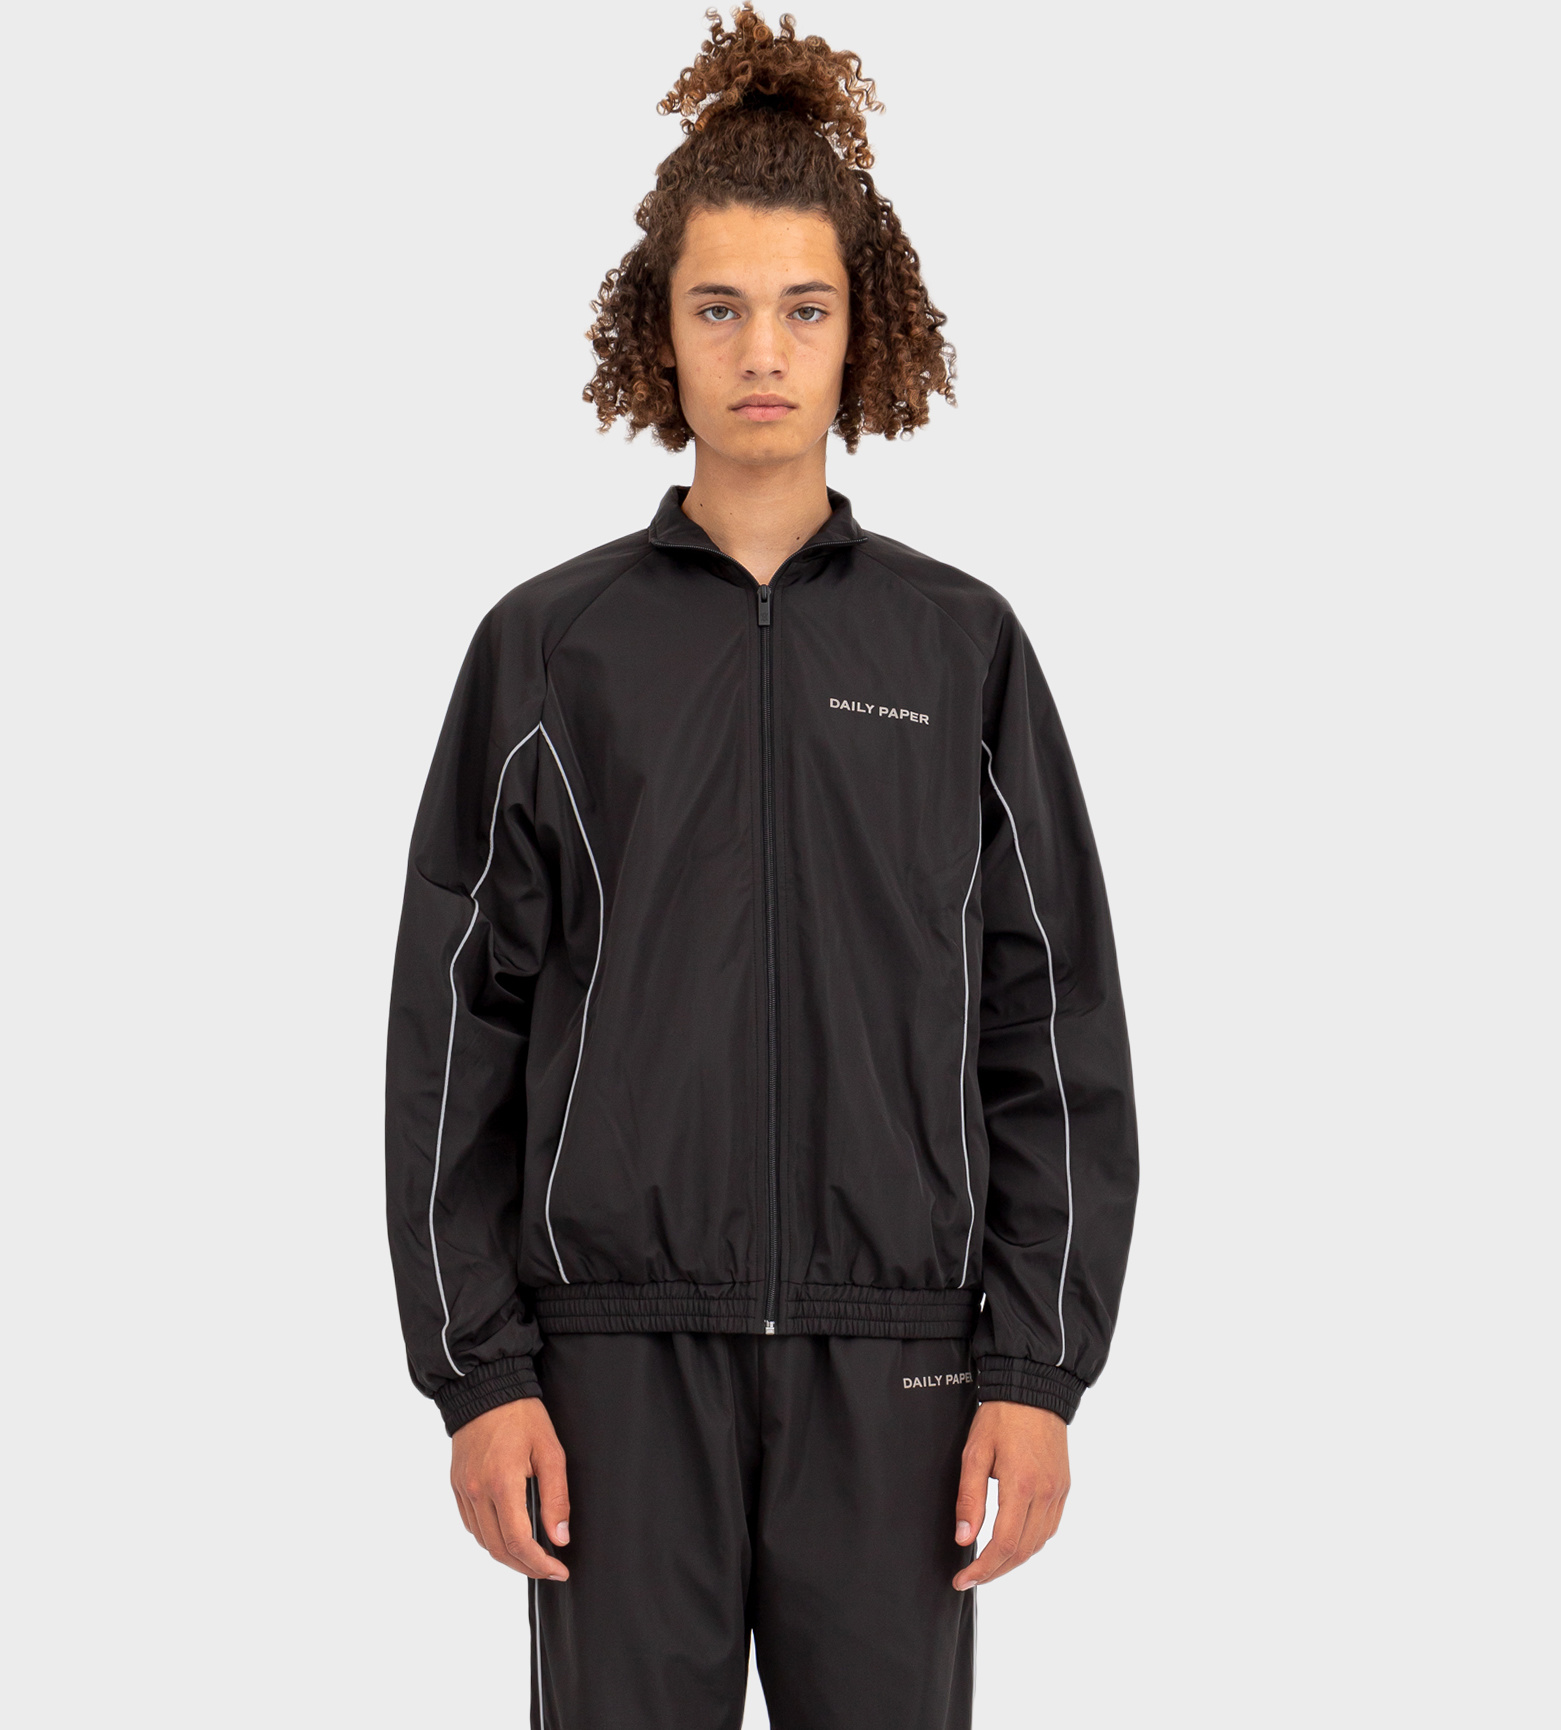 DAILY PAPER Etrack Top Jacket  Black